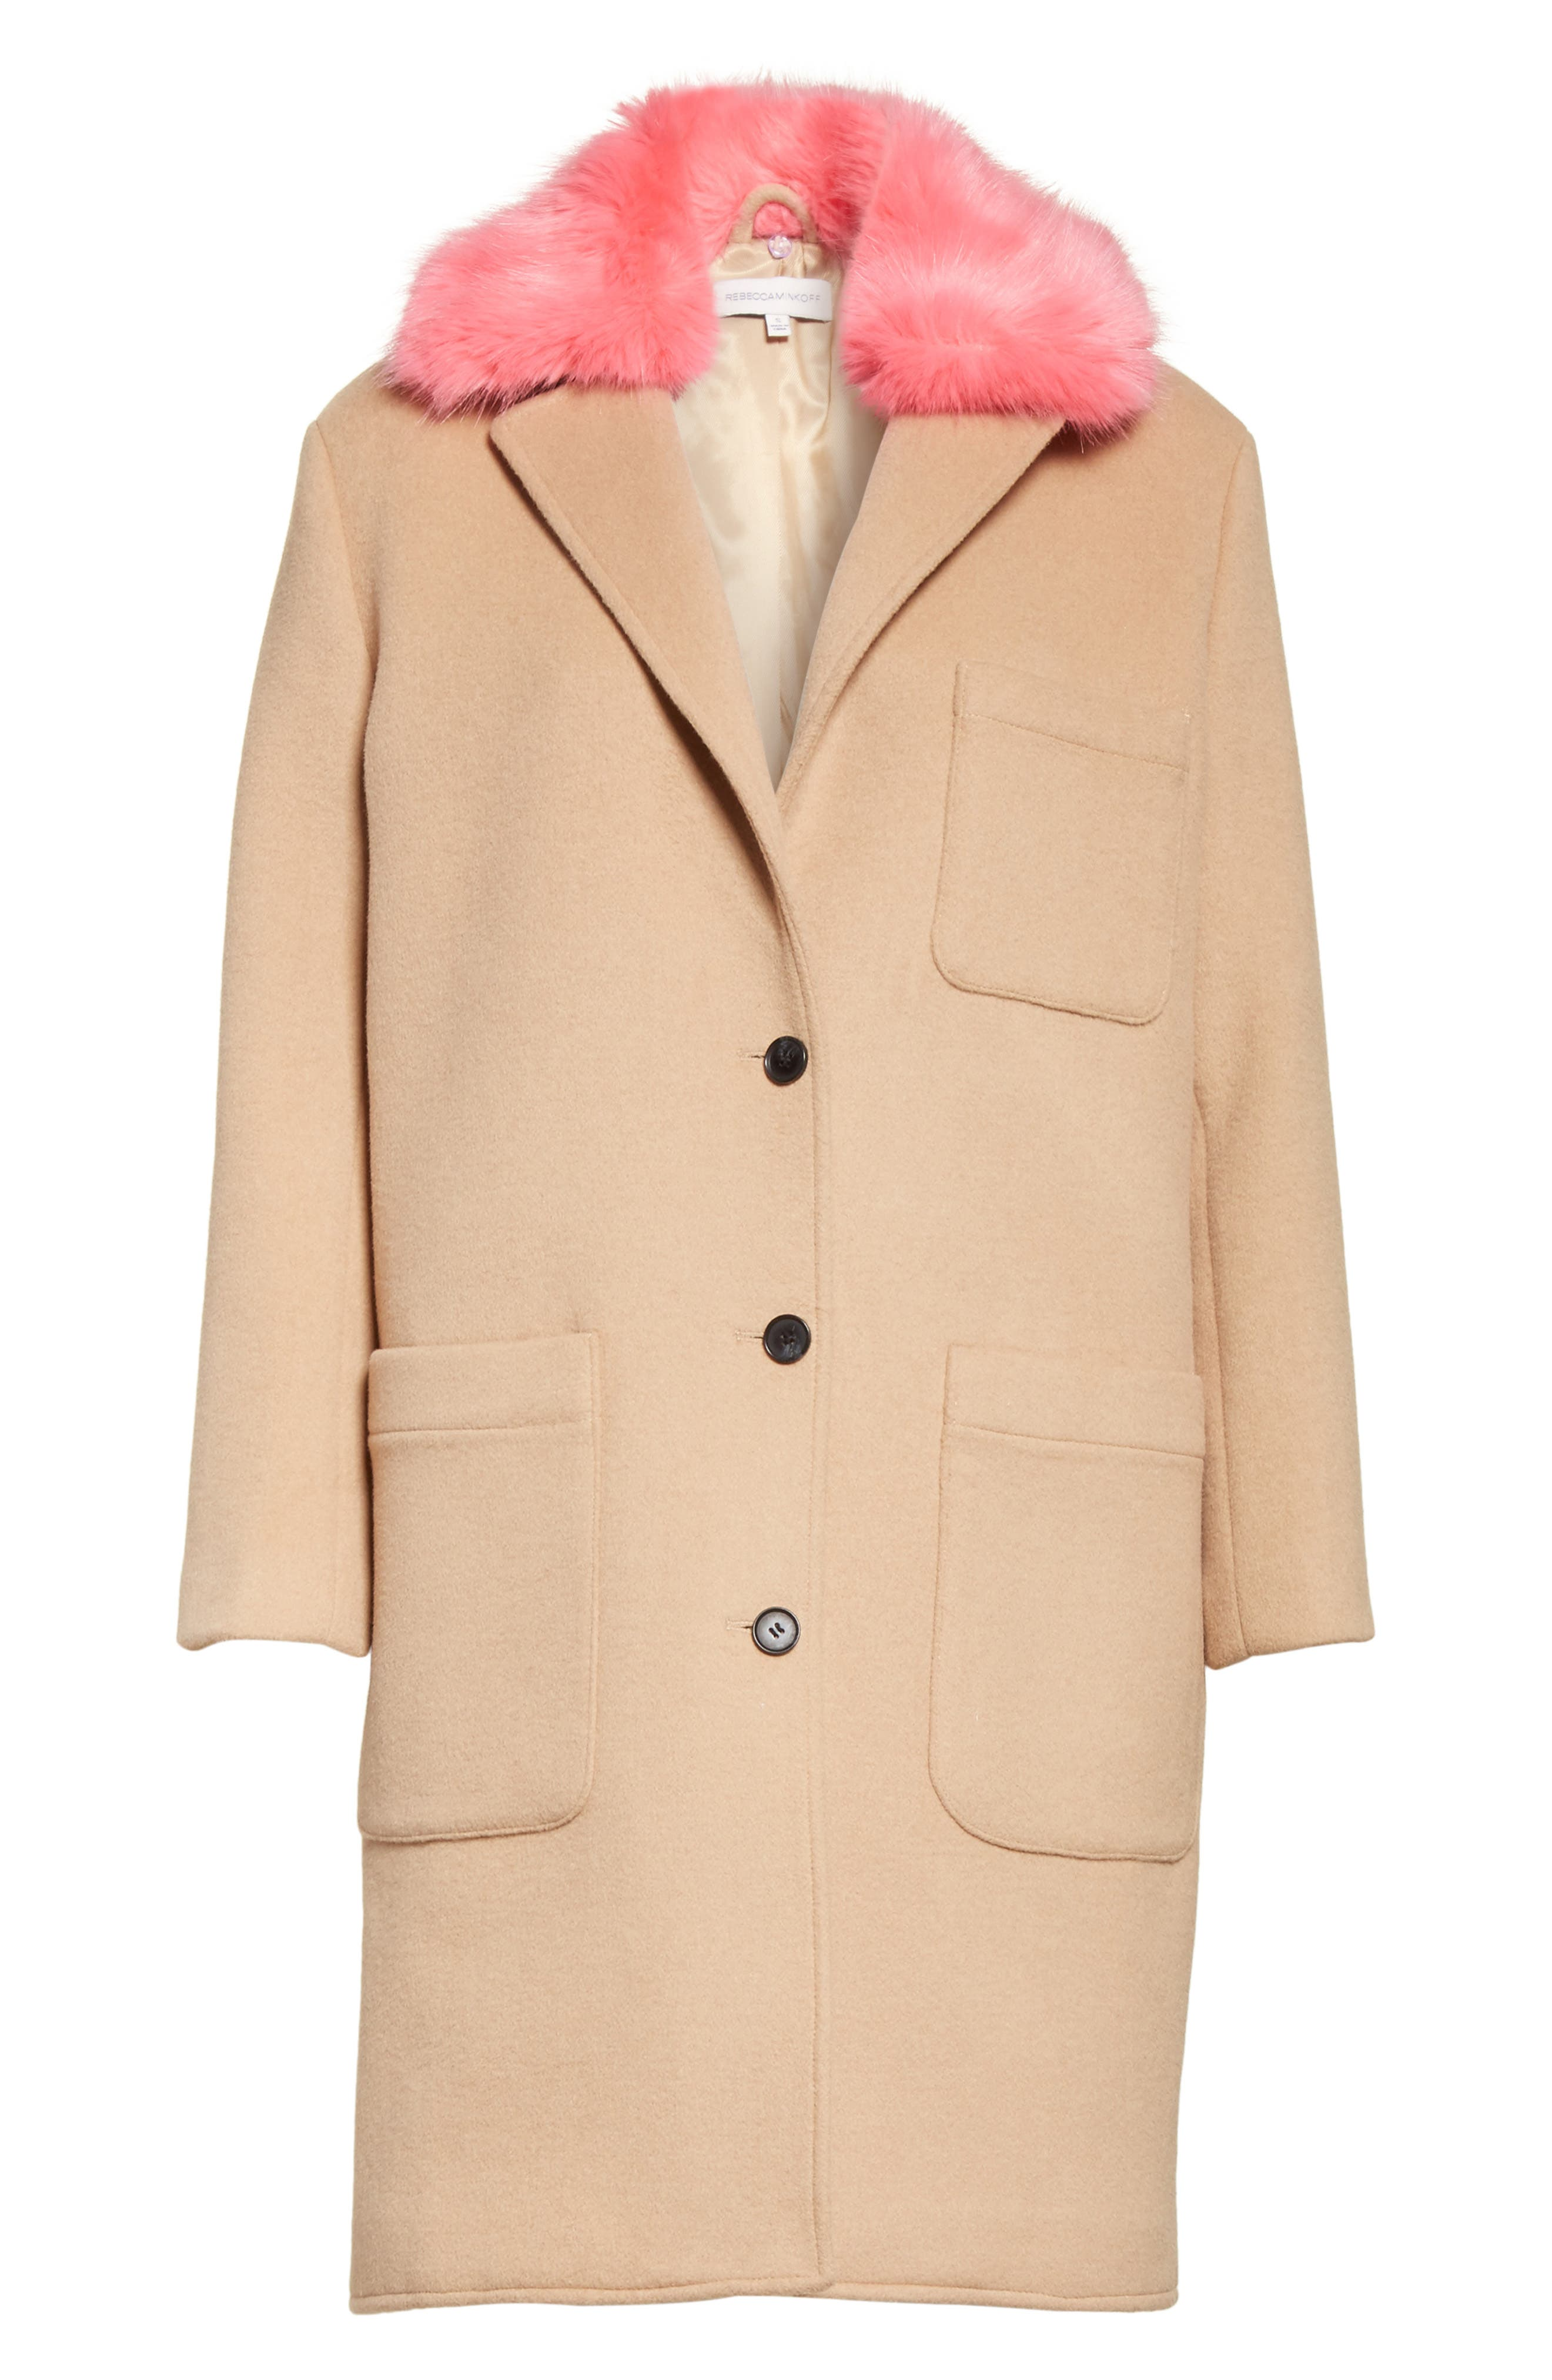 Allegra Wool Blend Coat,                             Alternate thumbnail 5, color,                             232